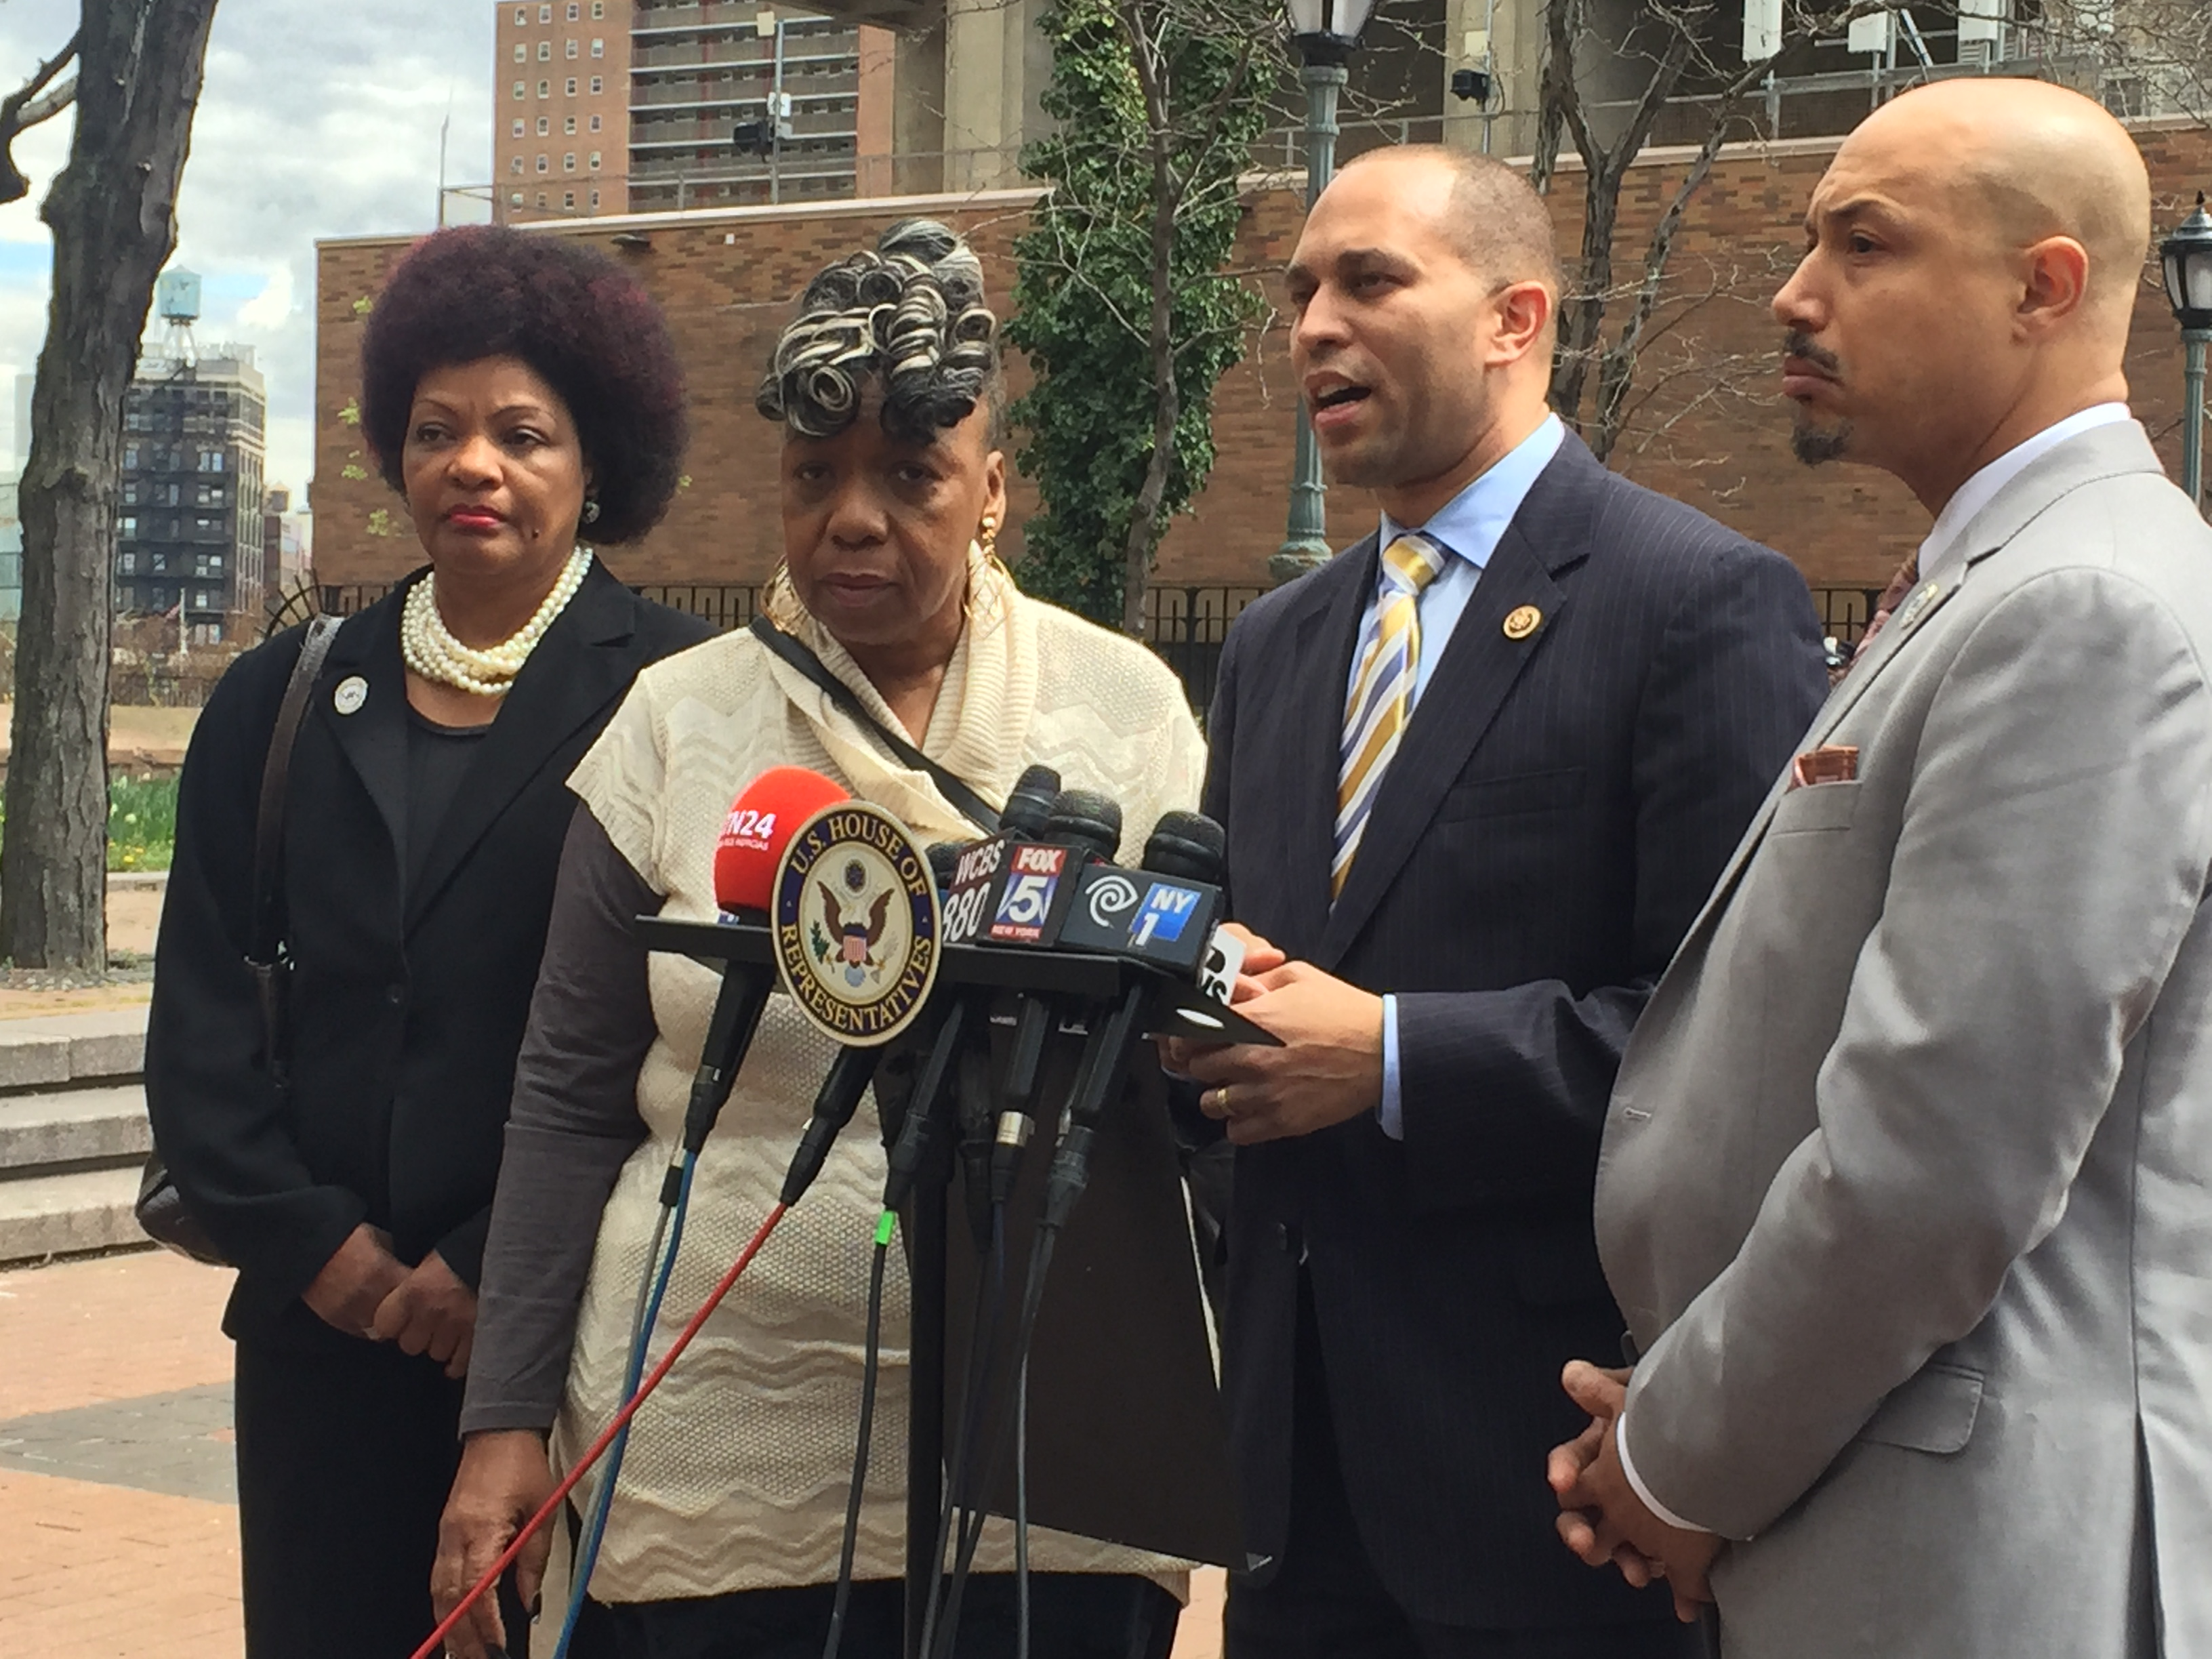 Cynthia Davis, of the National Action Network, Gwen Carr, mother of Eric Garner, Congressman Hakeem Jeffries and Kirsten John Foy of the National Action Network outside NYPD headquarters today. (Photo: Jillian Jorgensen/New York Observer)